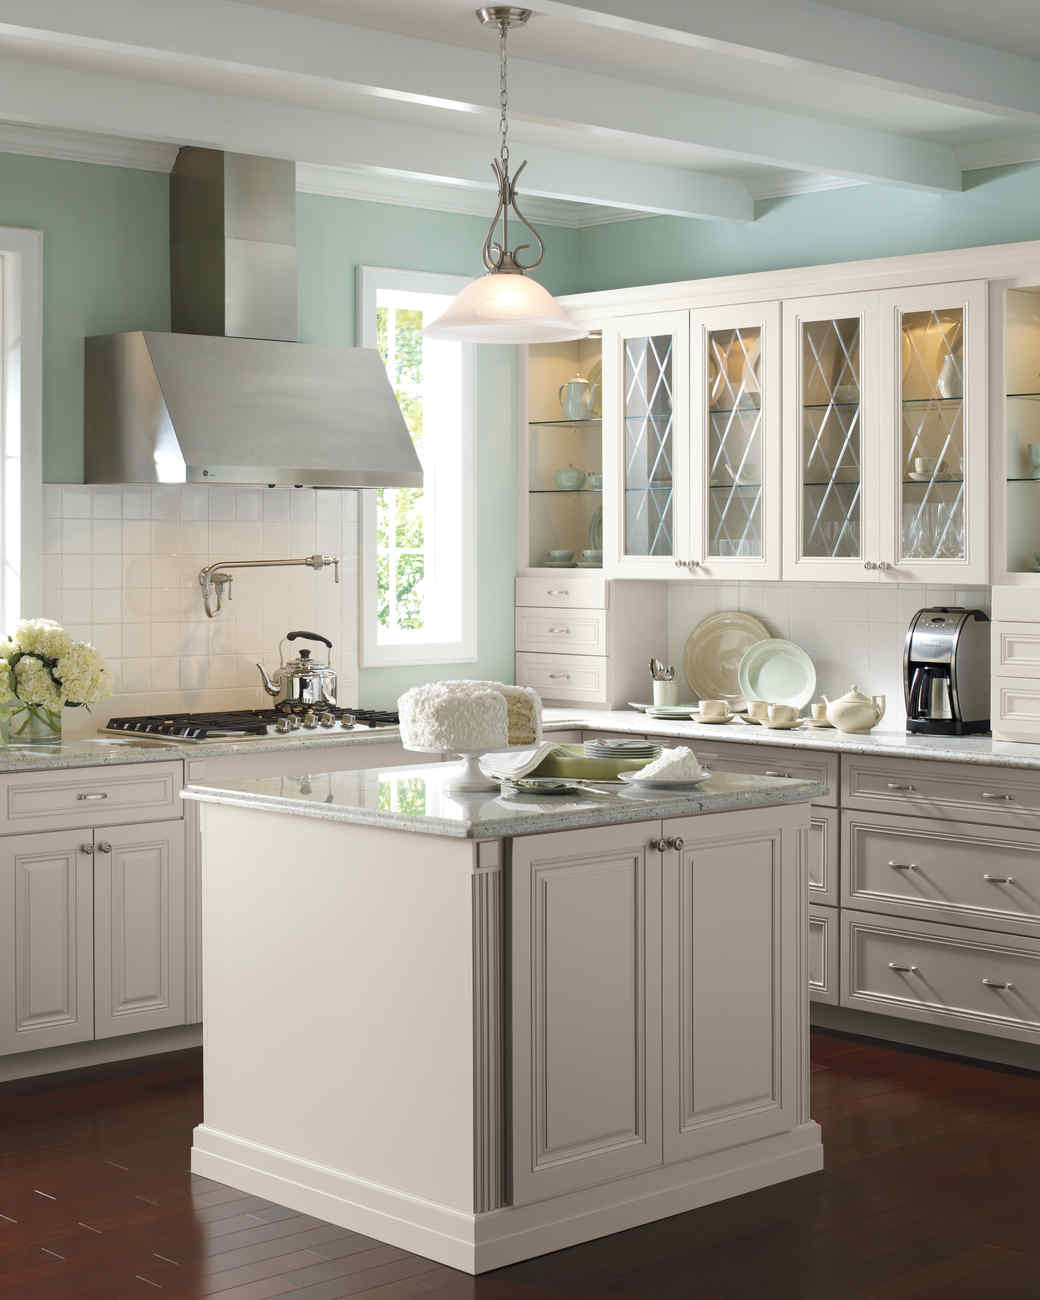 Home Depot Design Ideas: Select Your Kitchen Style